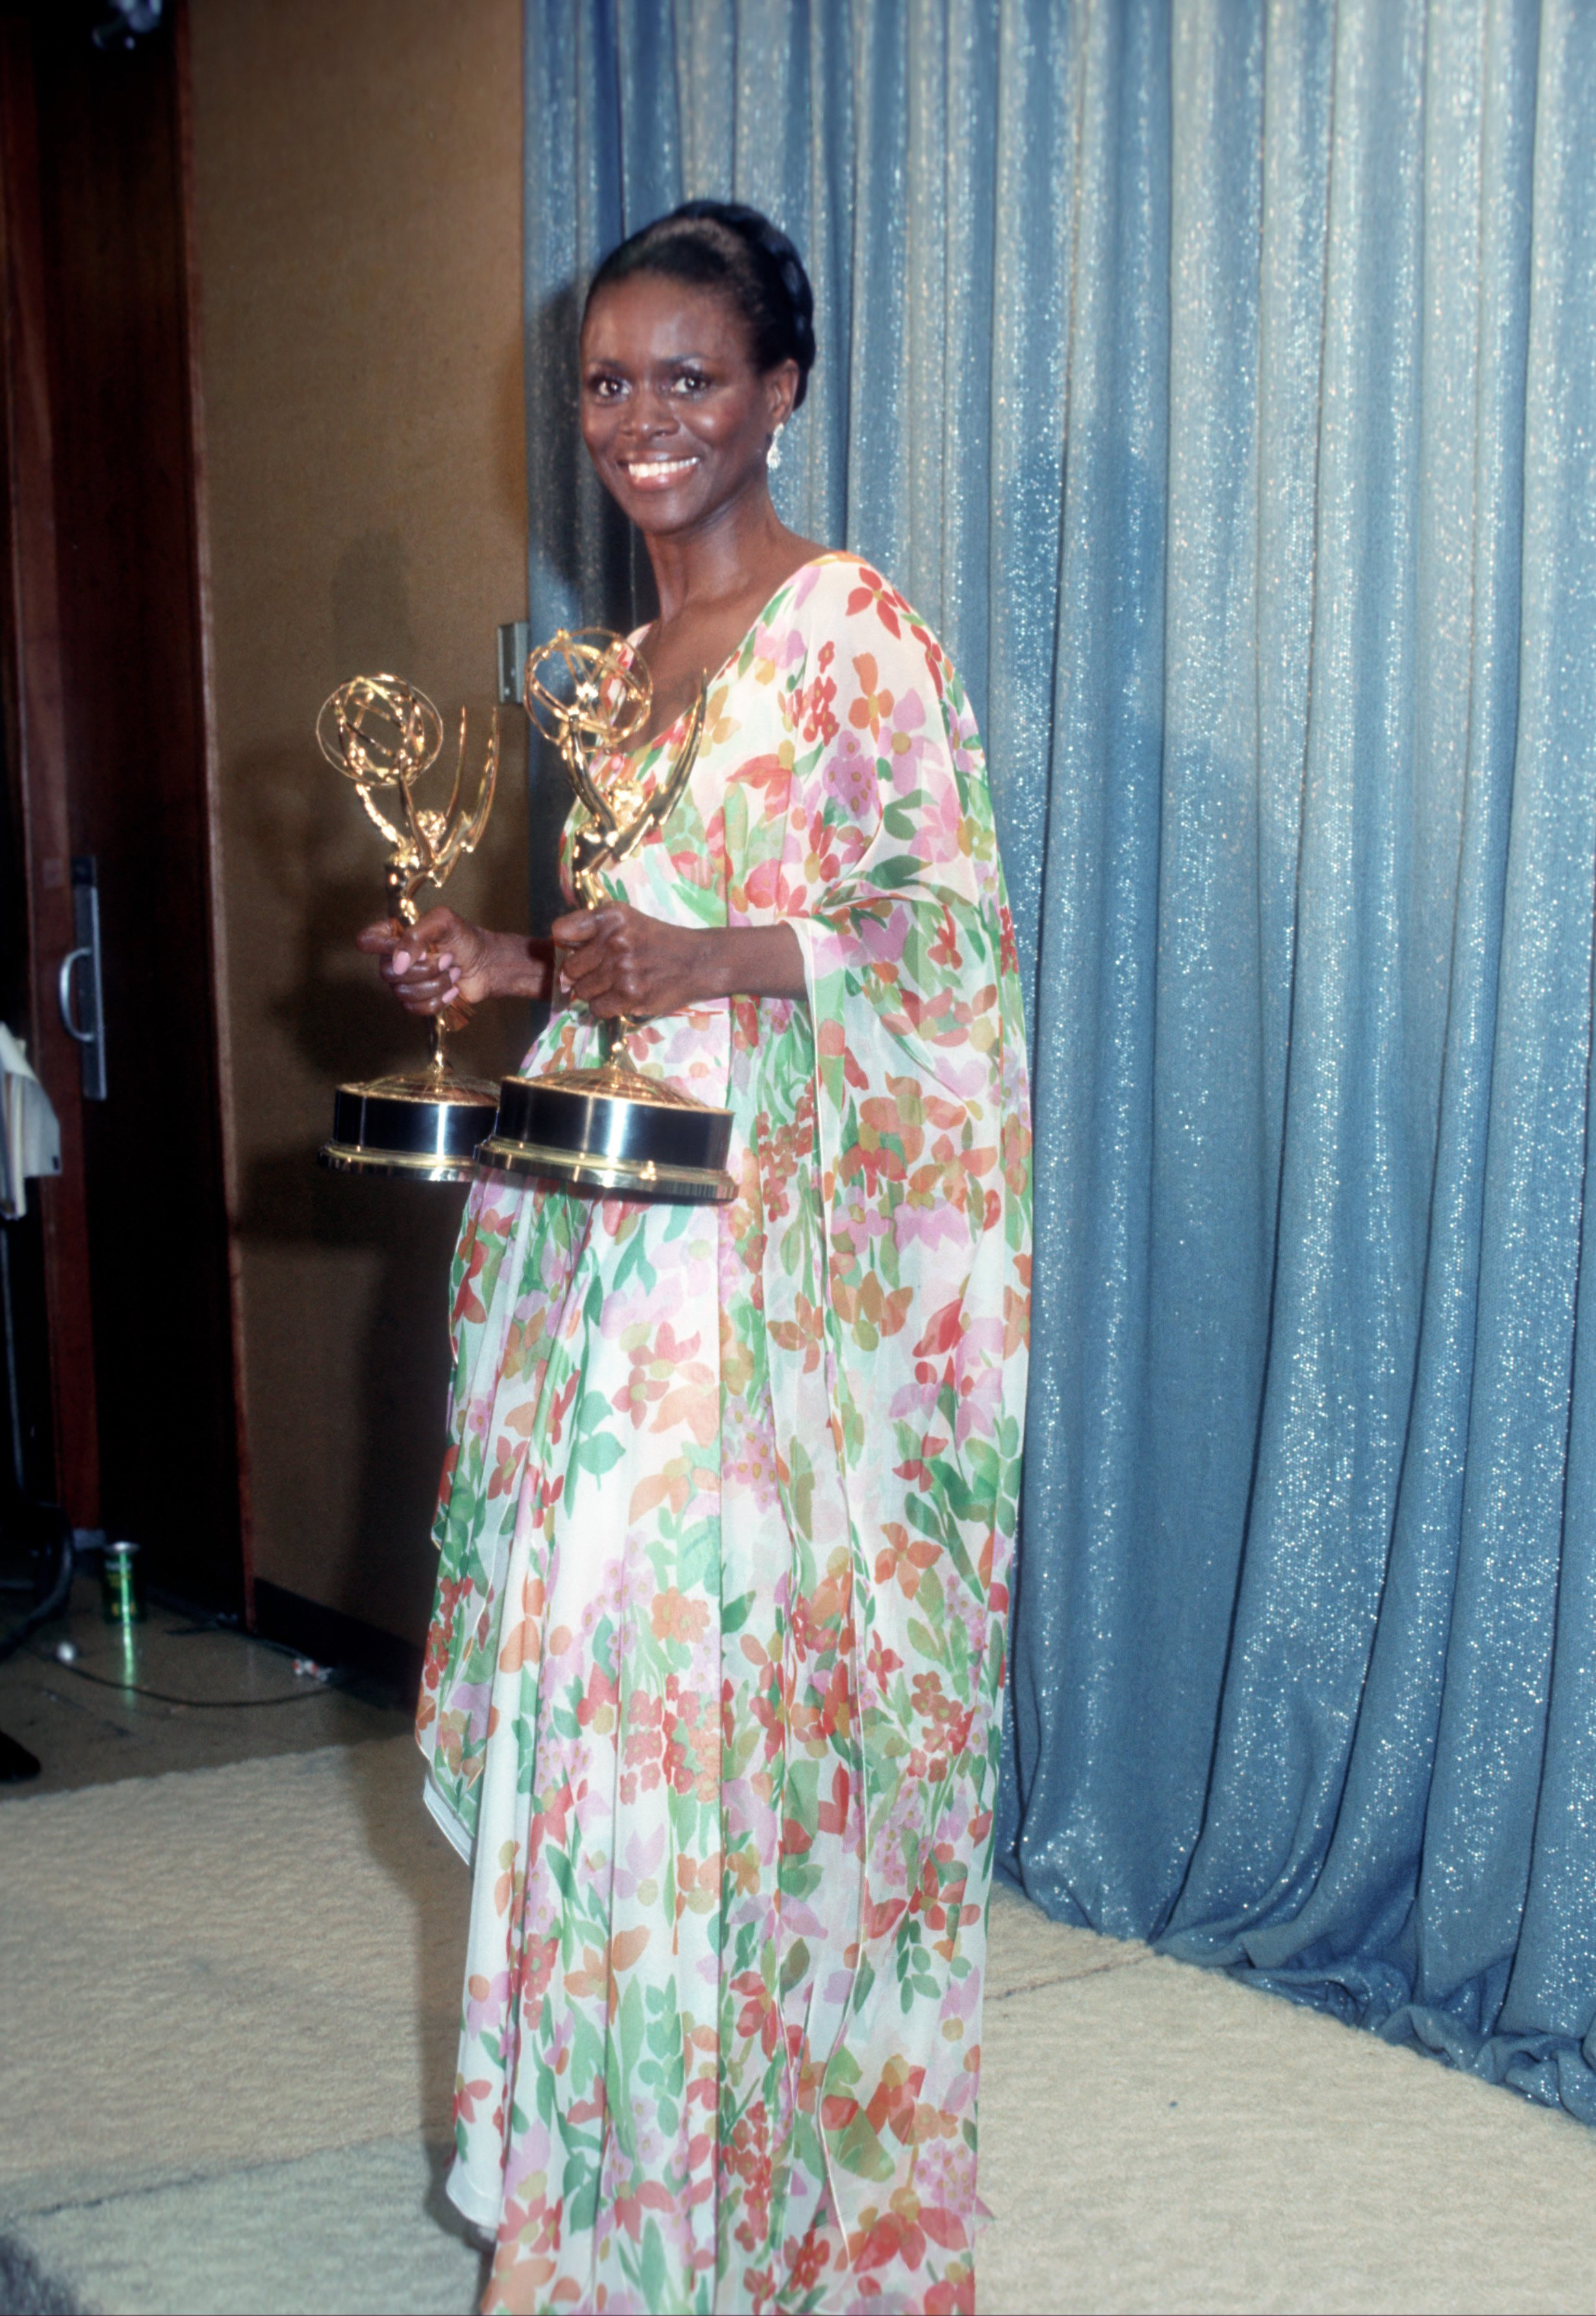 Cicely Tyson holds the two Emmy Awards that she won for her performance in The Autobiography Of Miss Jane Pittman on May 28, 1974 in Los Angeles, California.